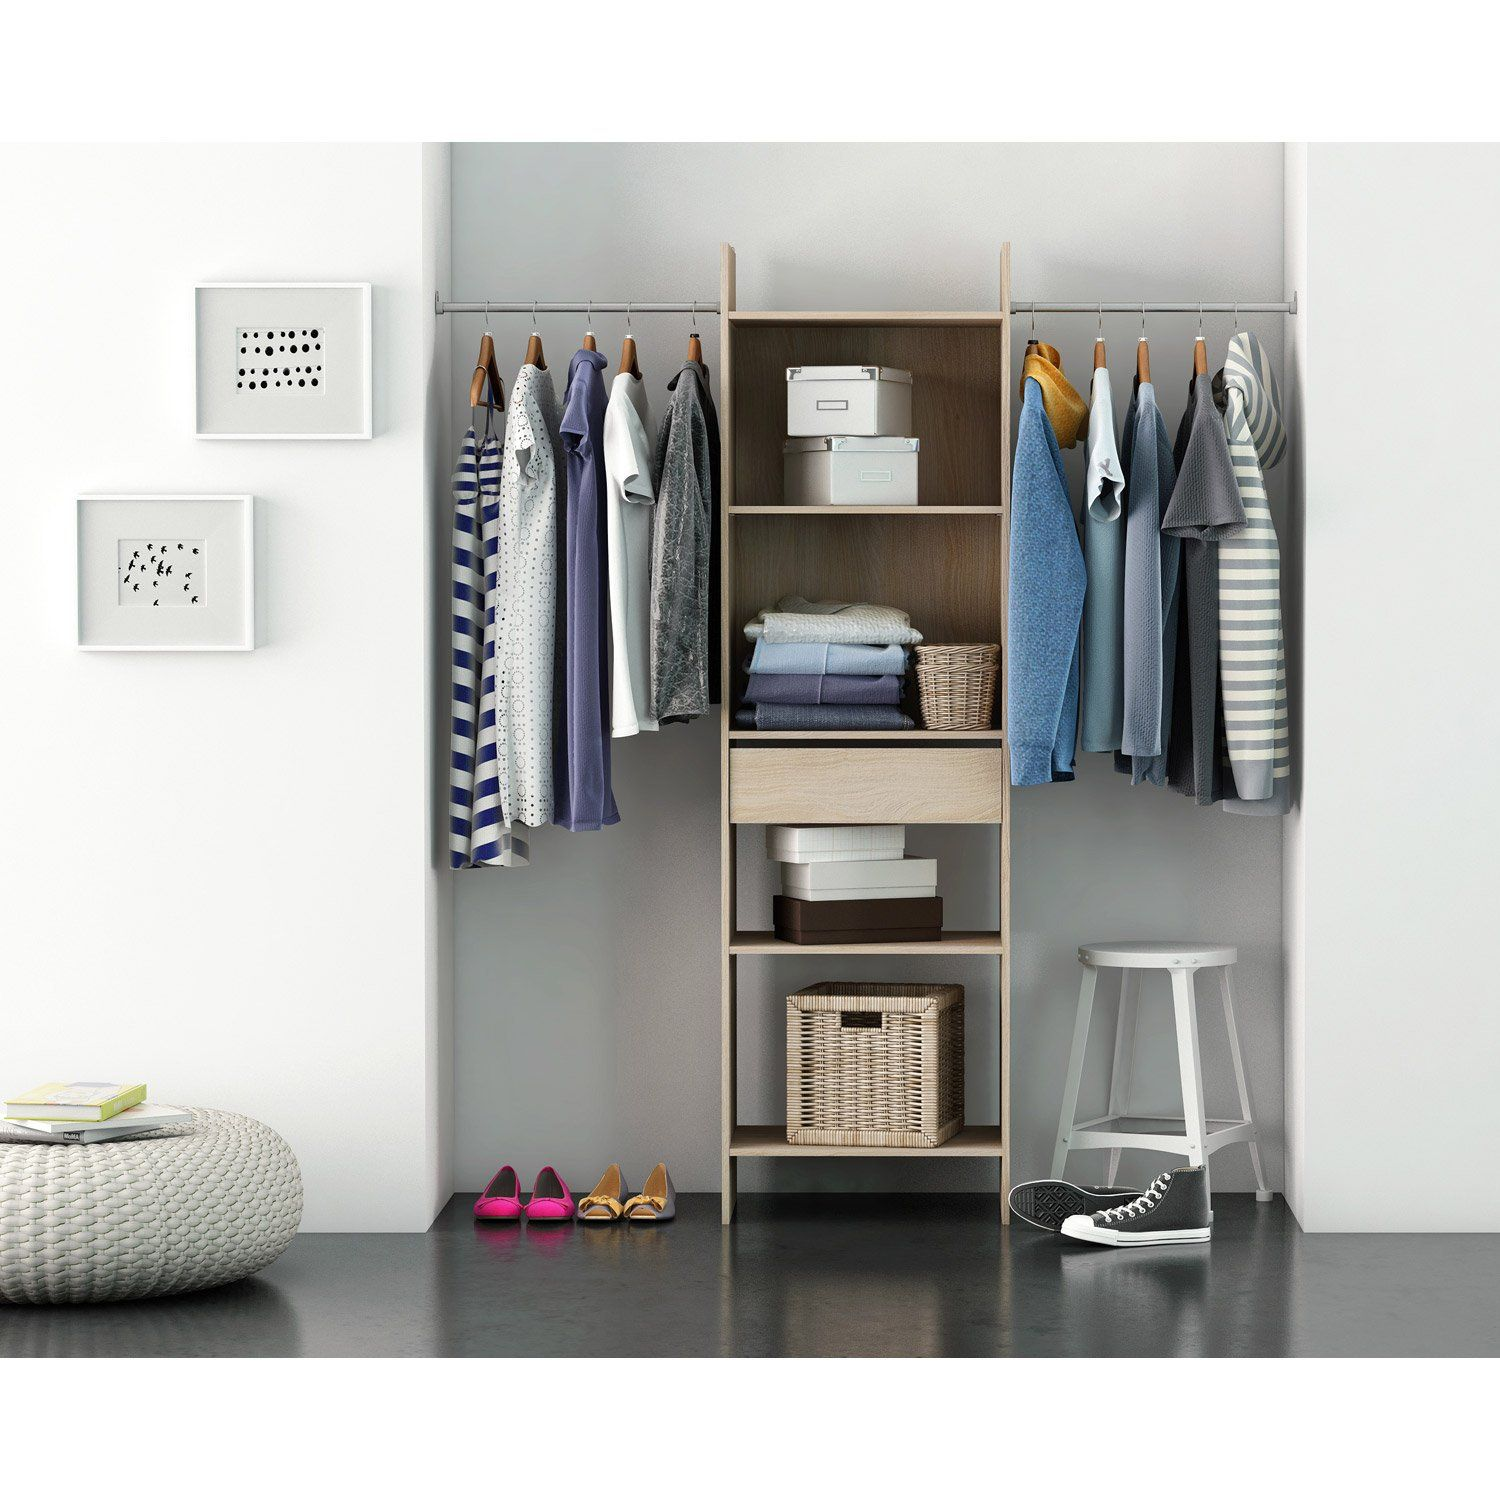 Dressing Spaceo Home Effet Chene Leroy Merlin Faire Un Dressing Idee Dressing Penderie